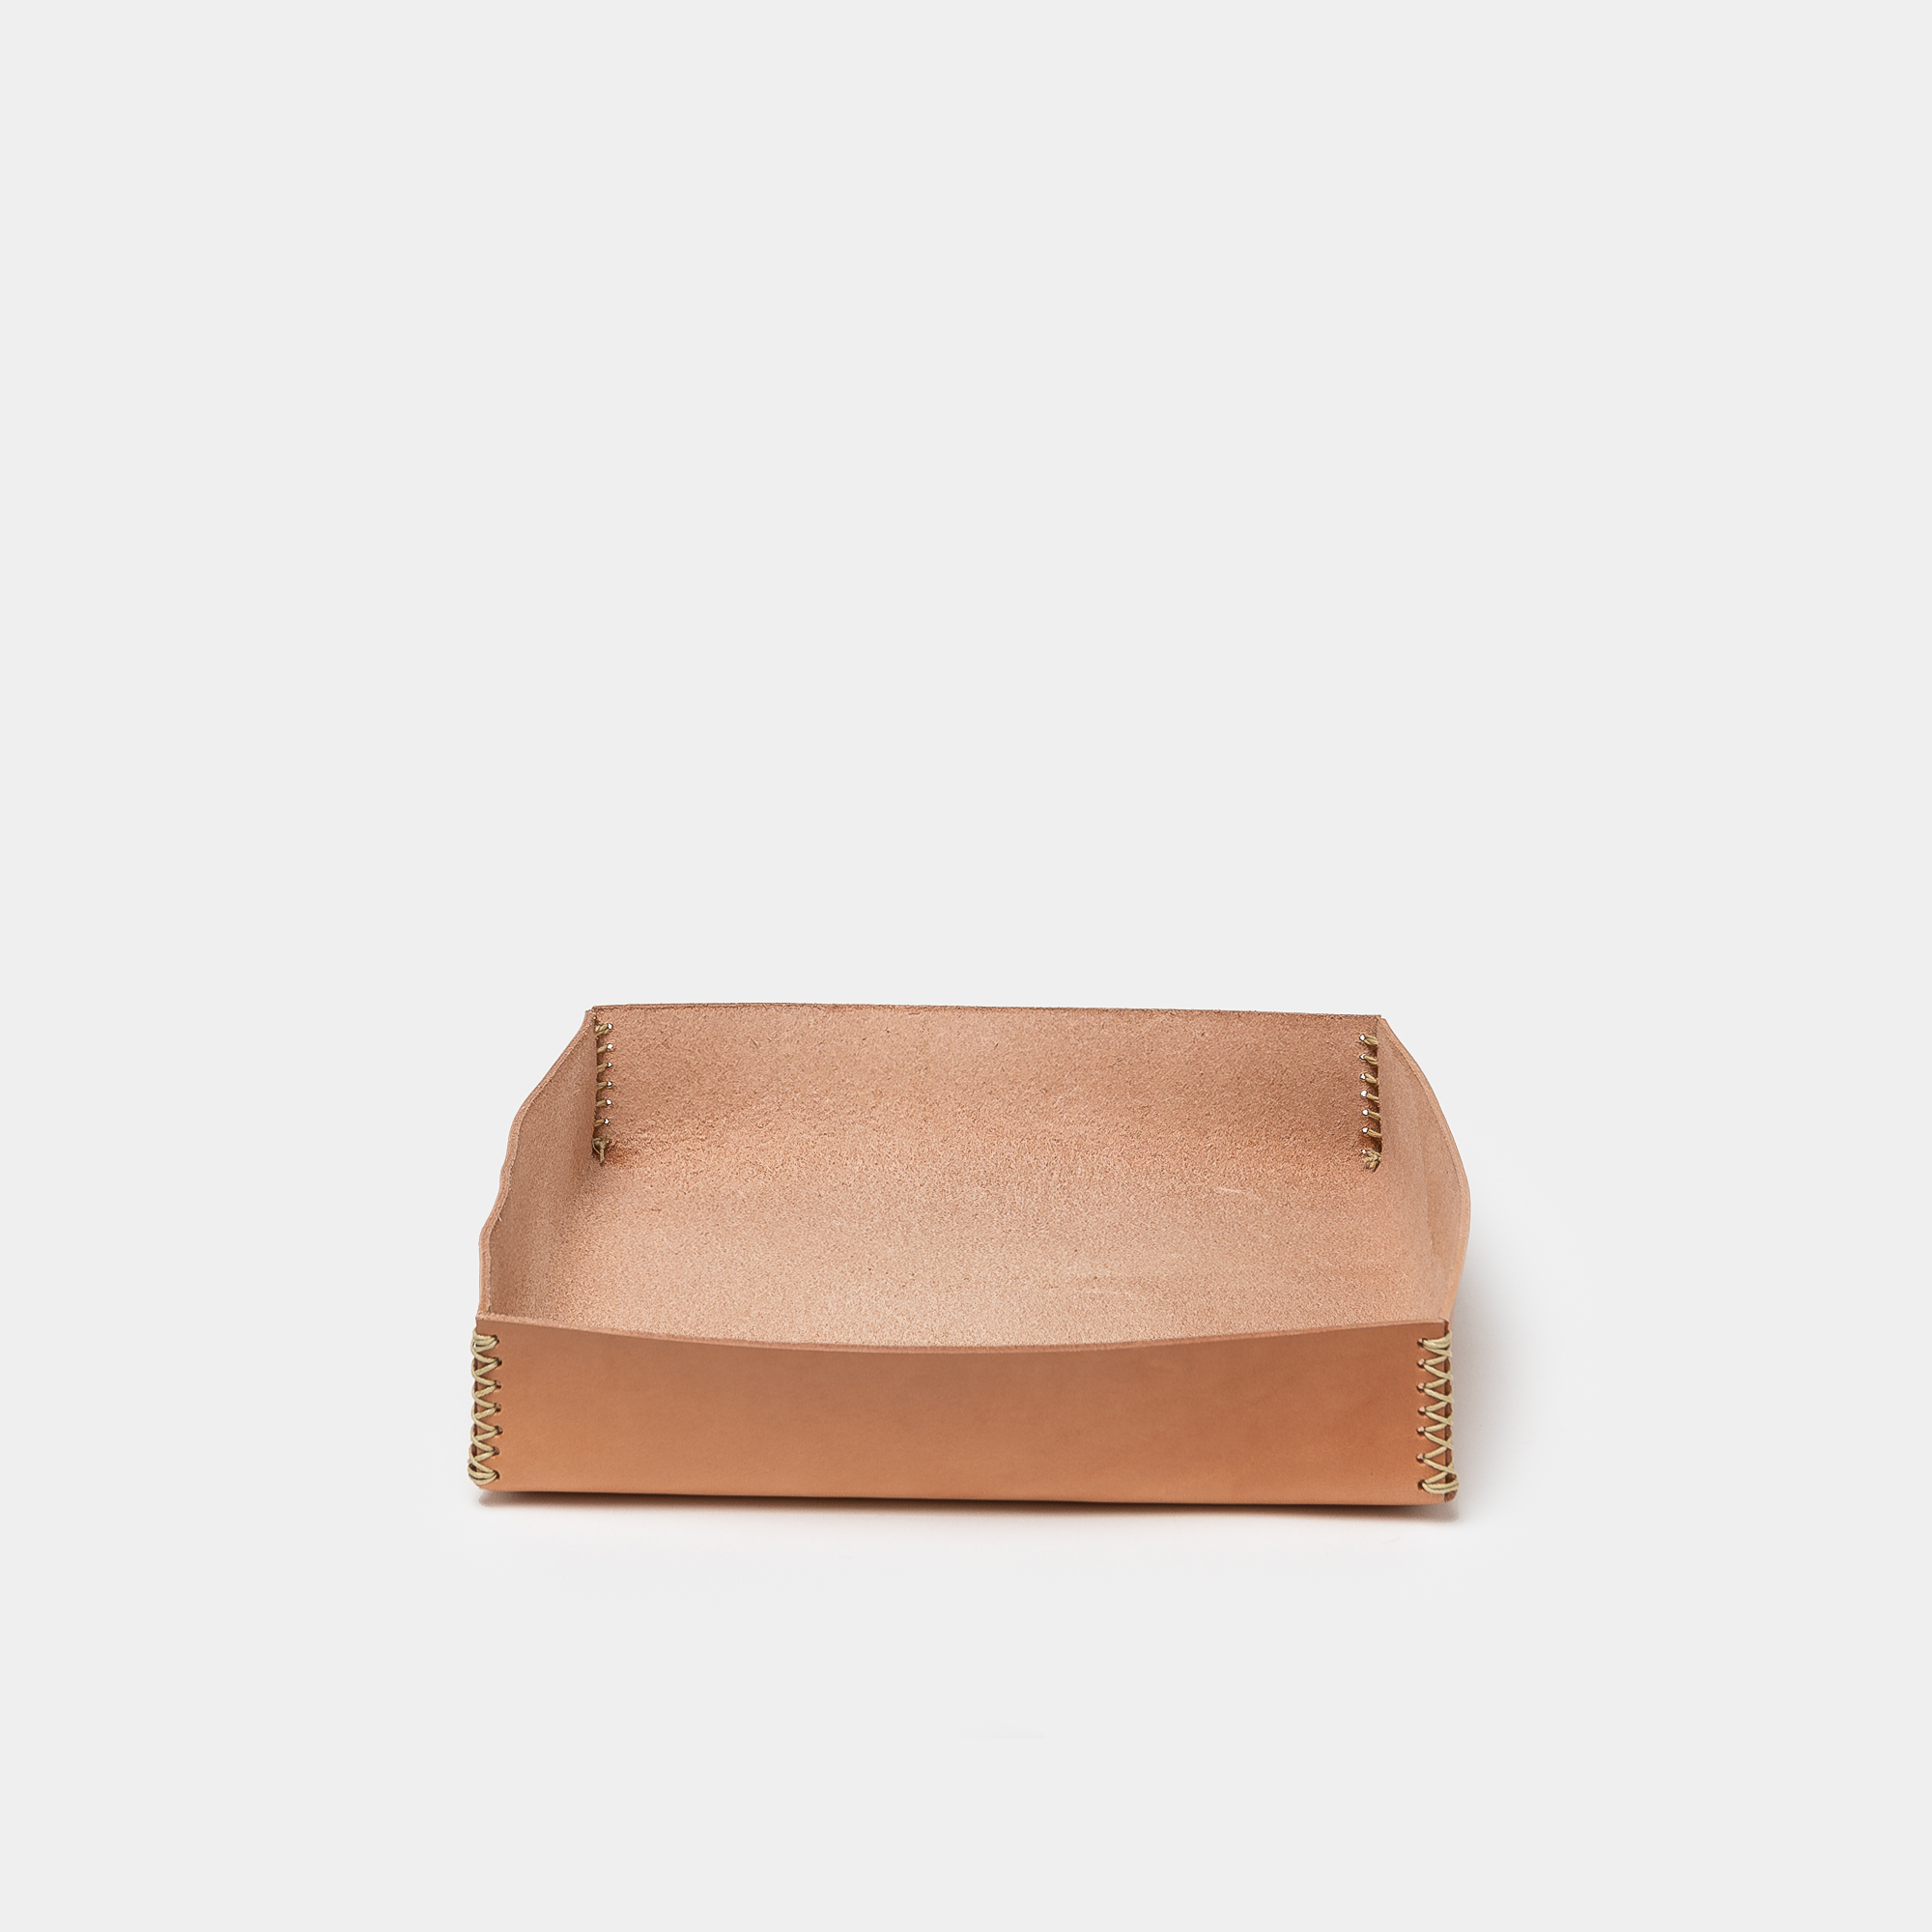 ALL-SORTS-OF-SHOPPE-MADE-SOLID-LEATHER-TRAY-SMALL